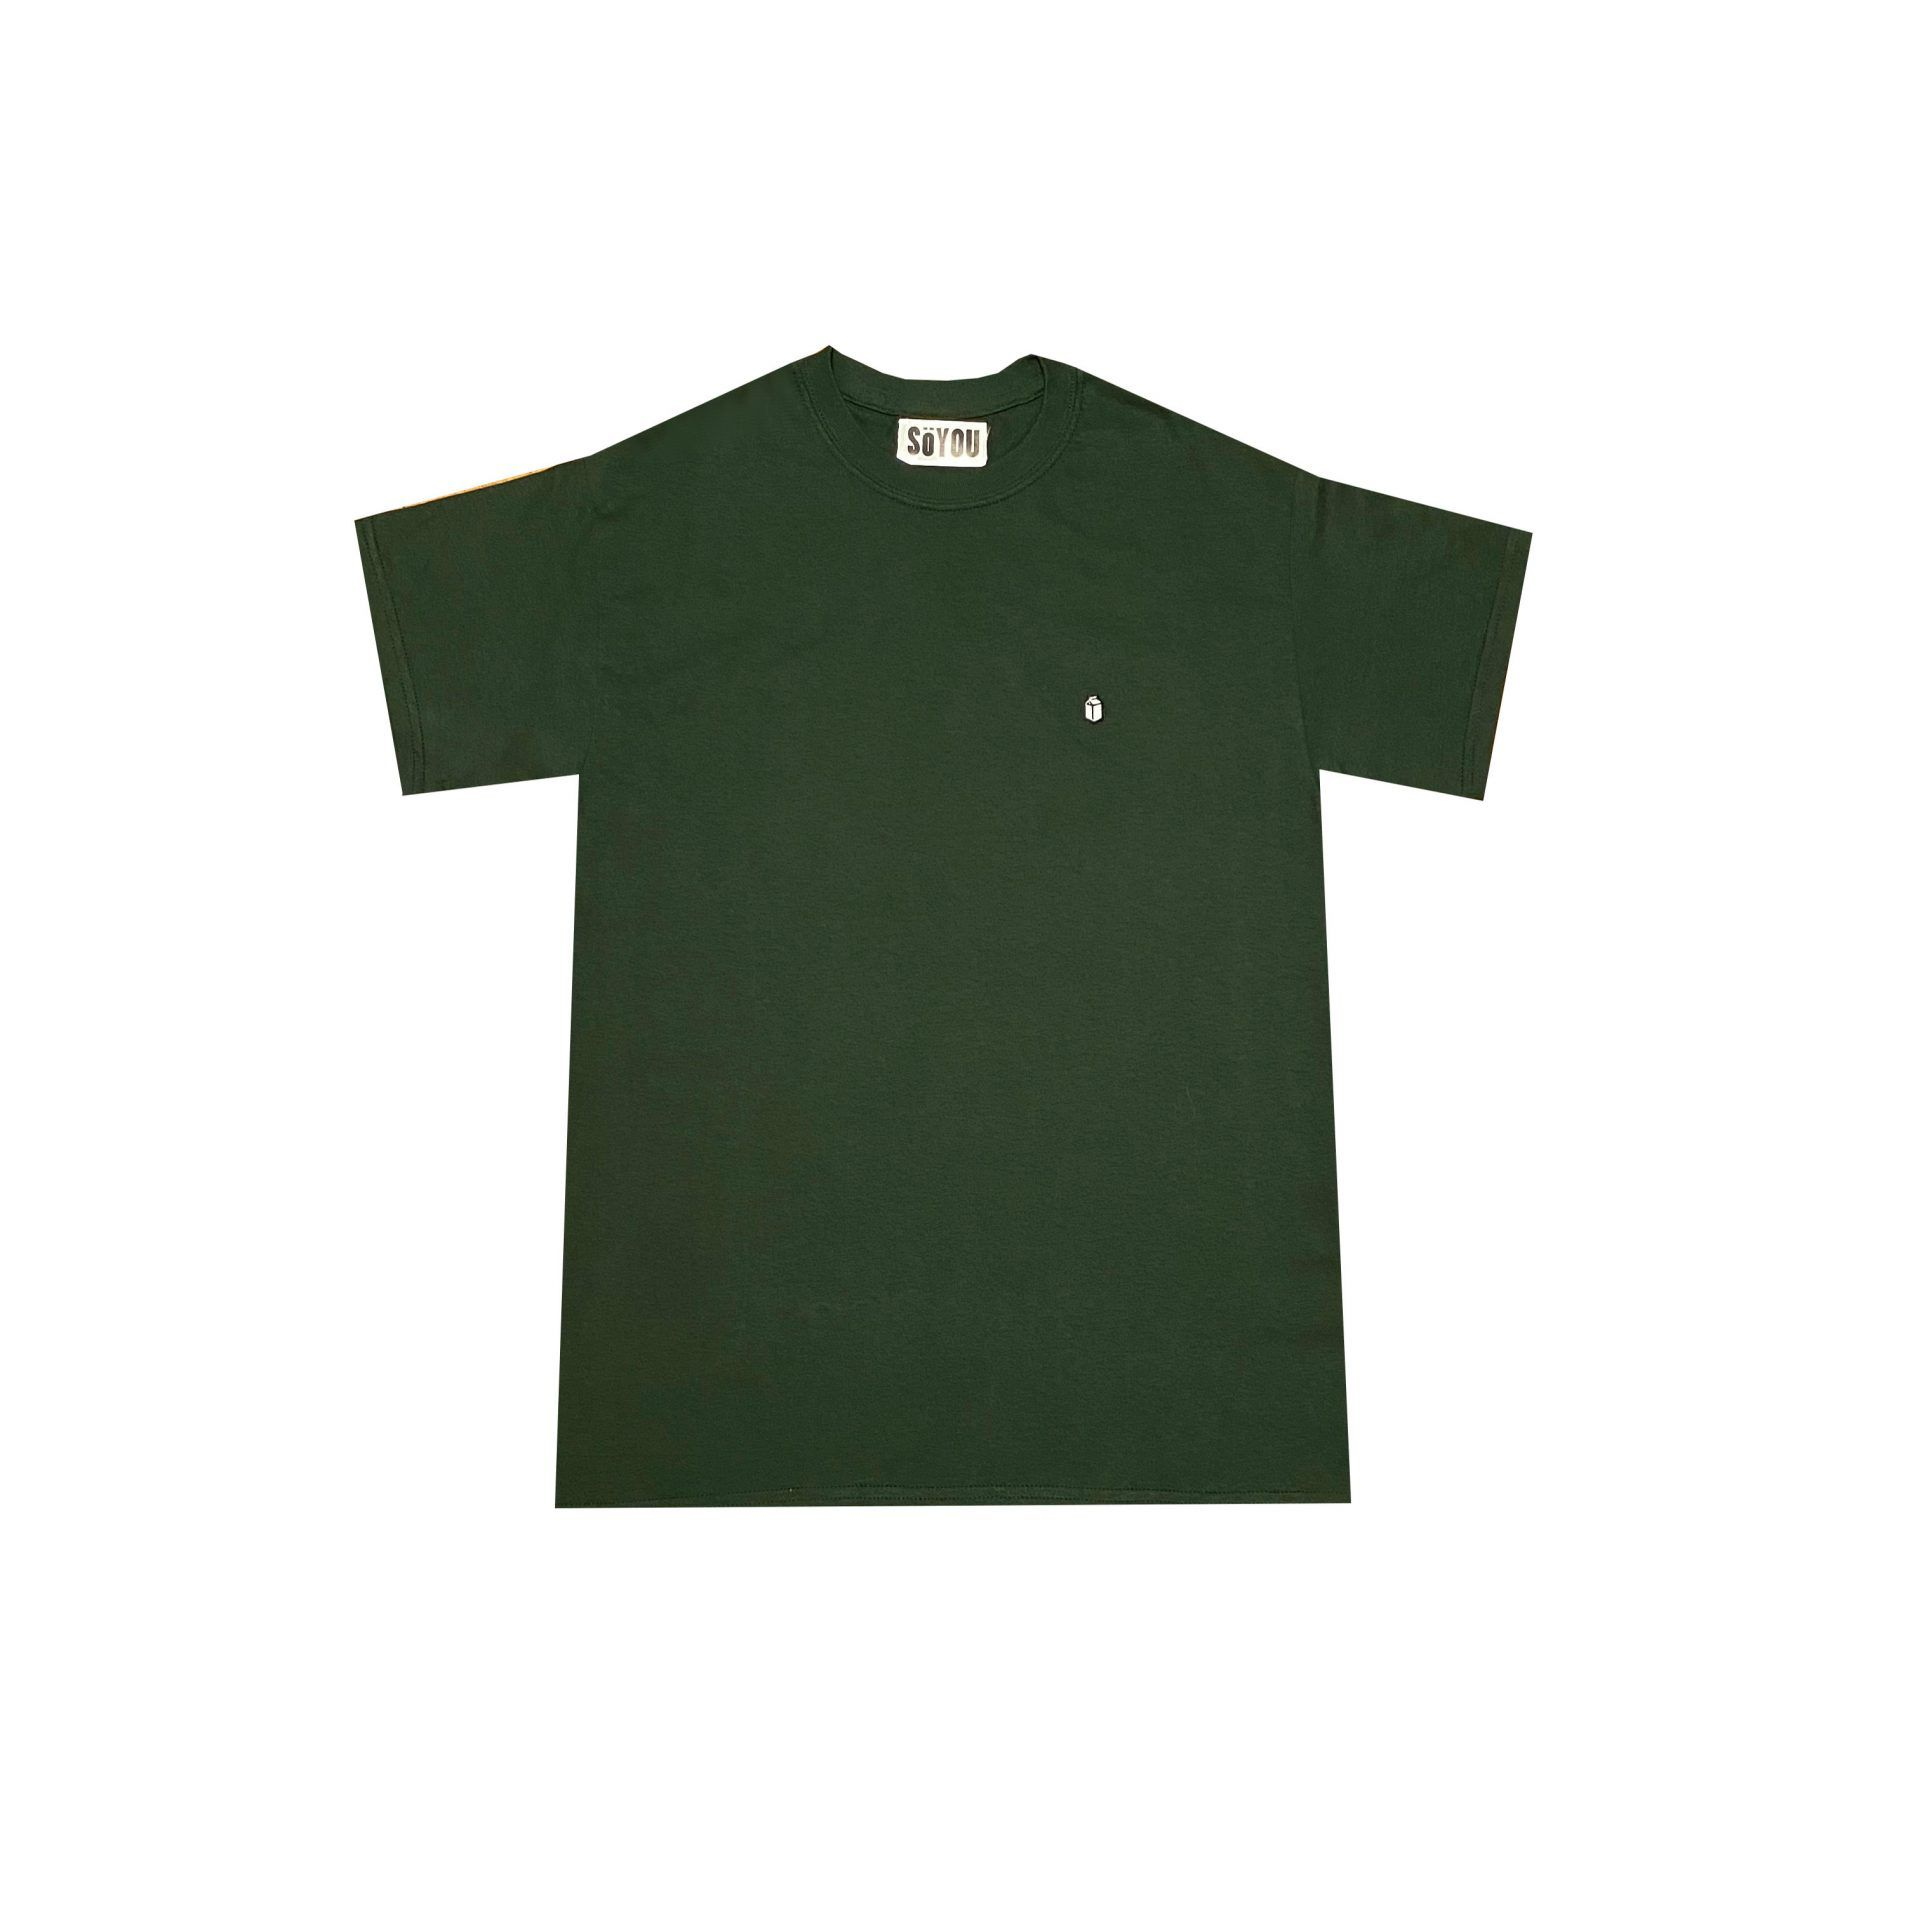 SoYou Clothing Basics T-Shirt in Forest Green